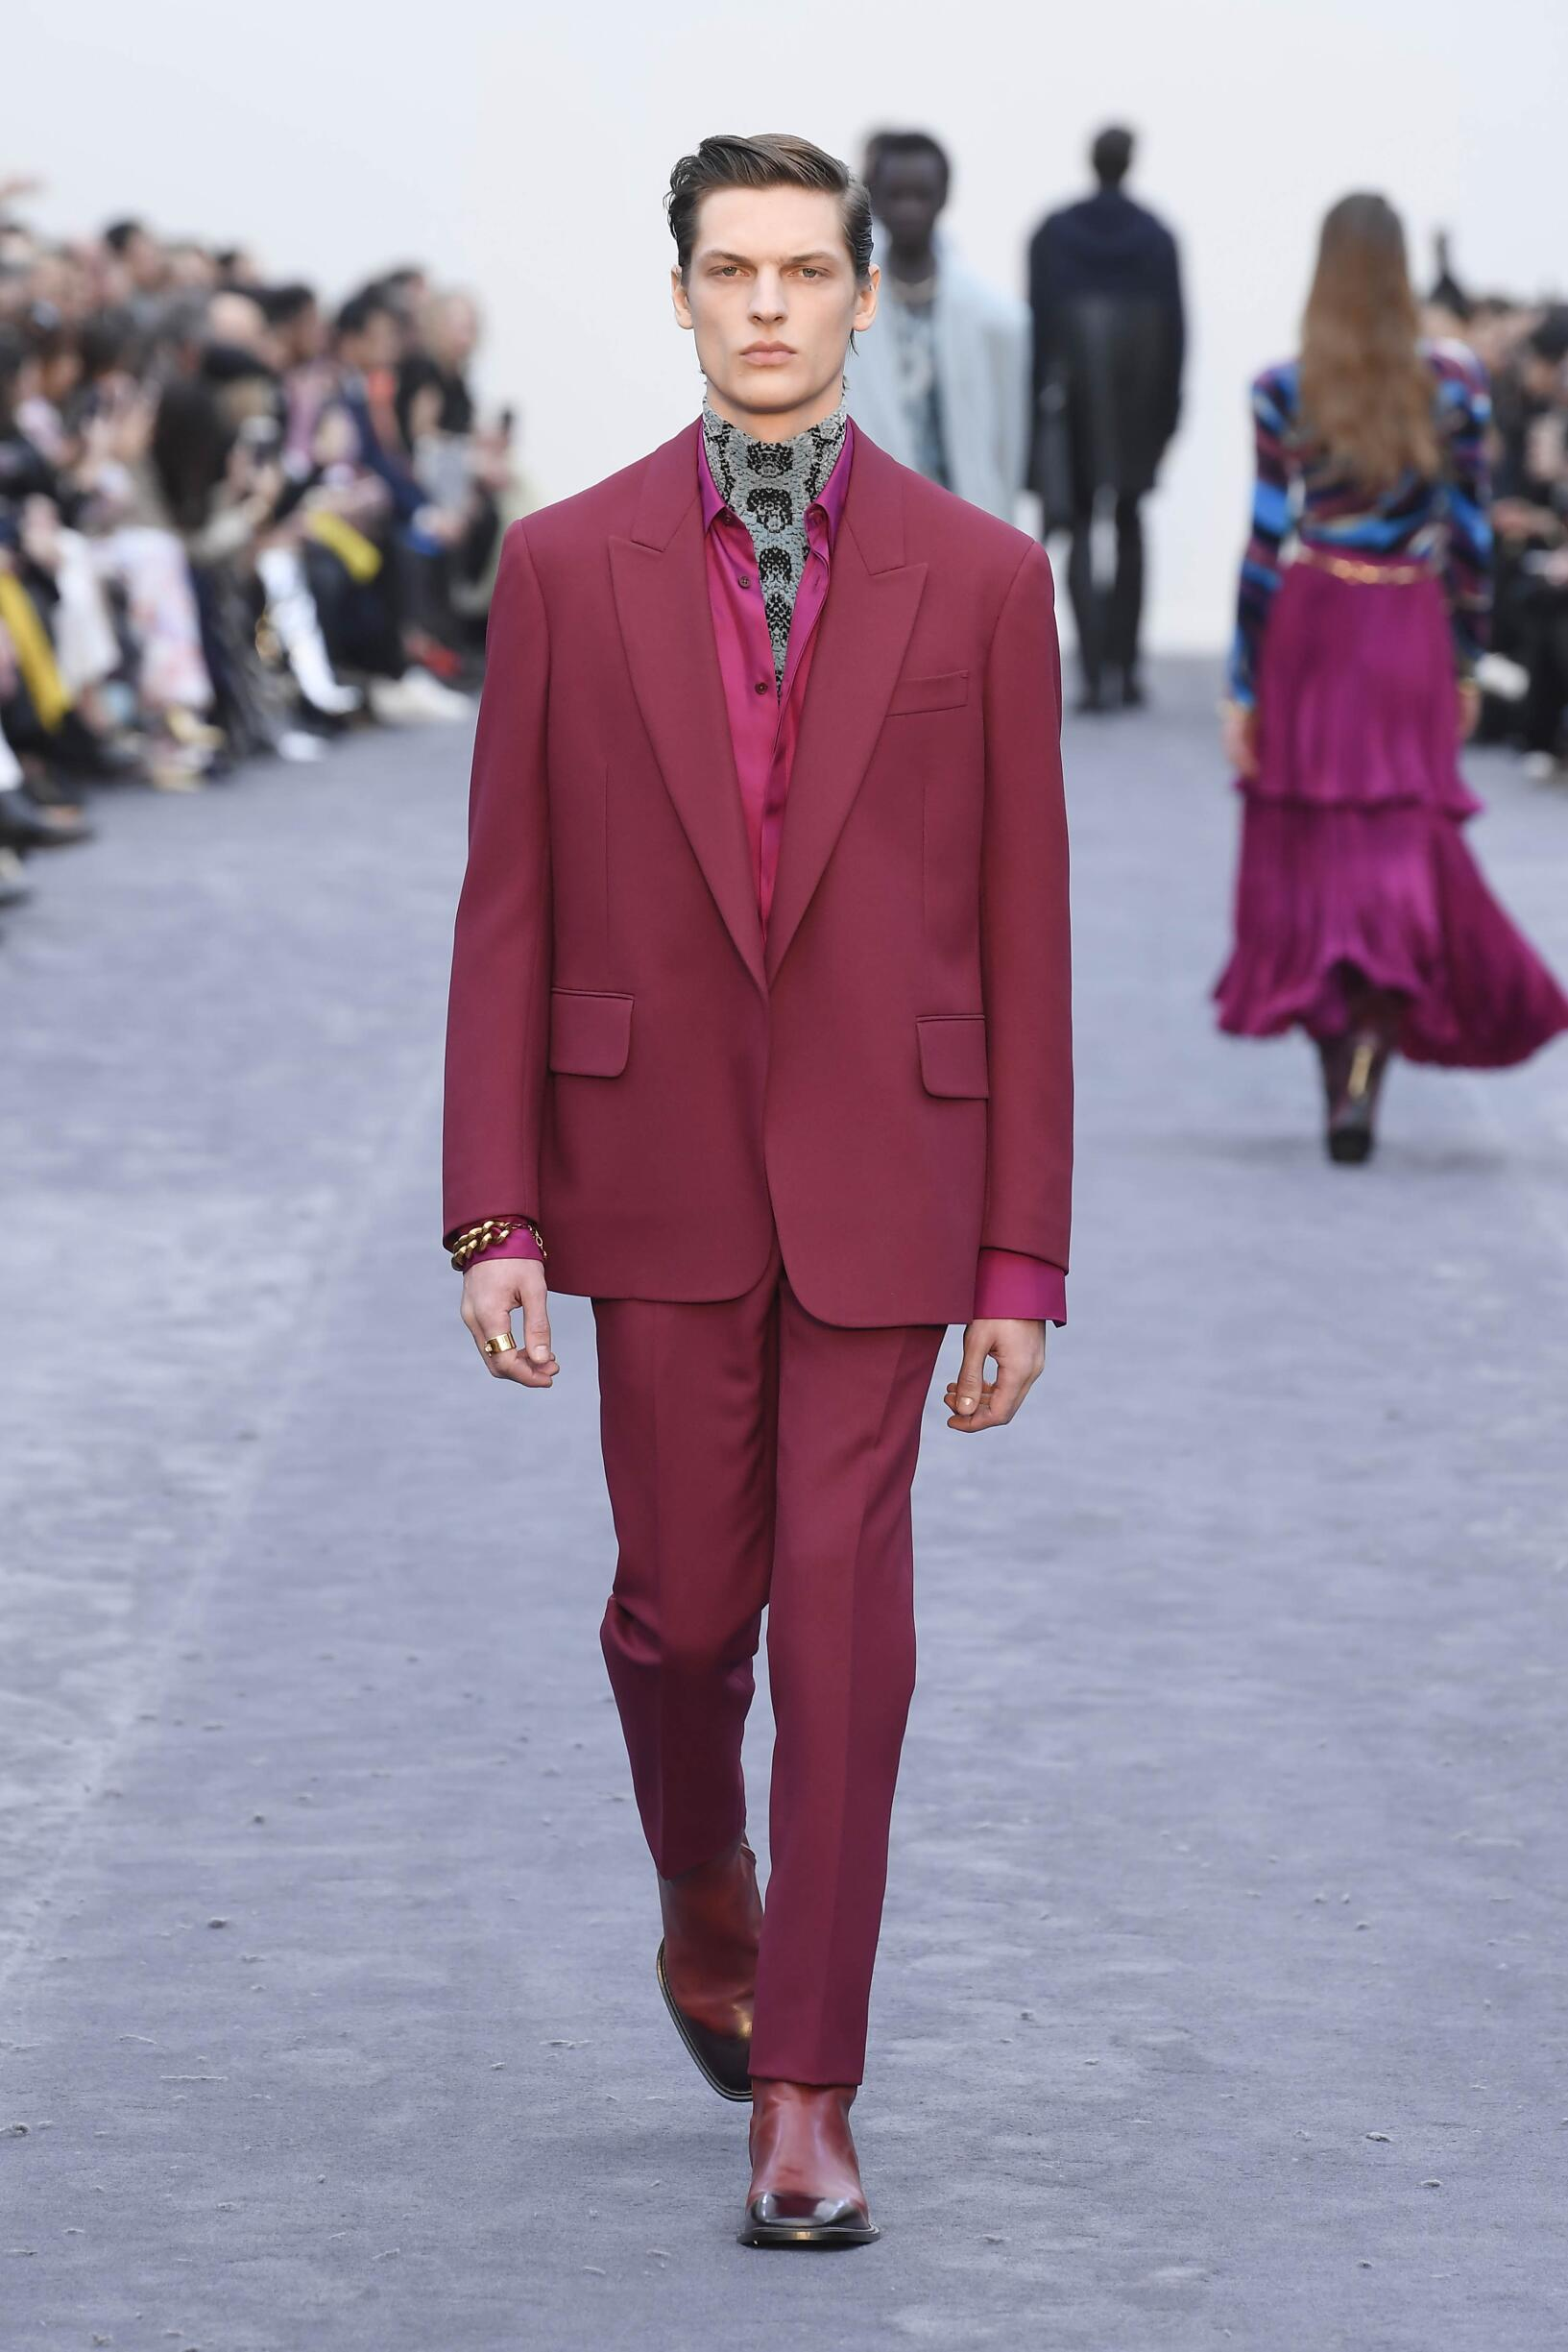 Roberto Cavalli Milan Fashion Week Menswear Trends